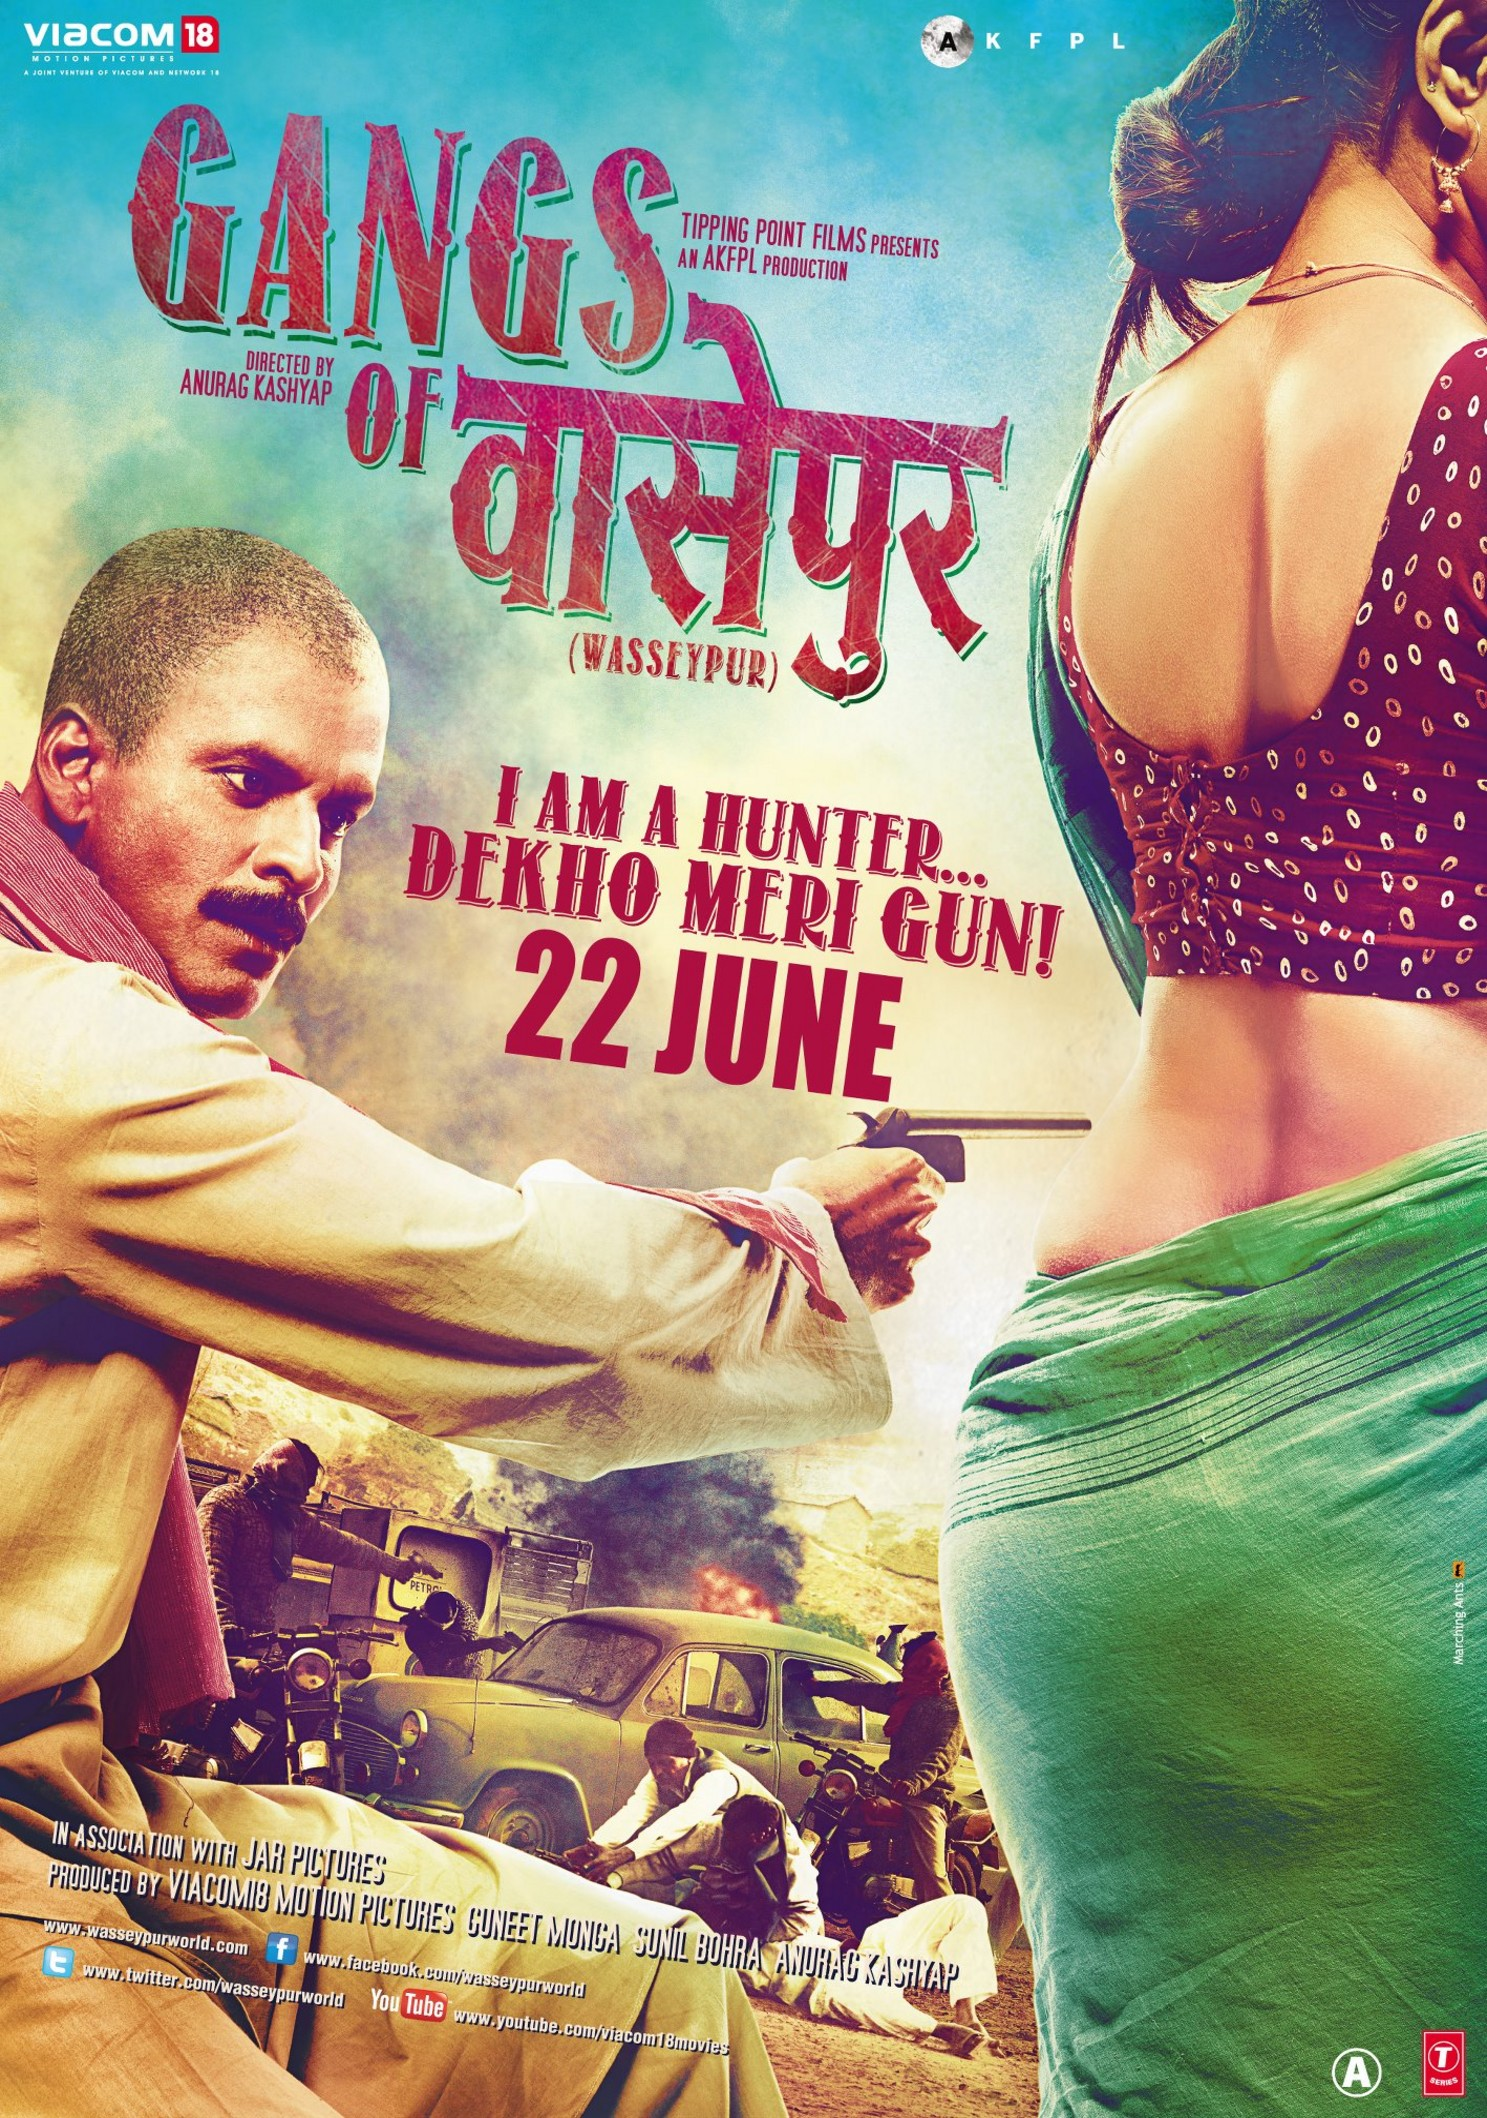 Gangs Of Wasseypur - Movie Poster #3 (Original)